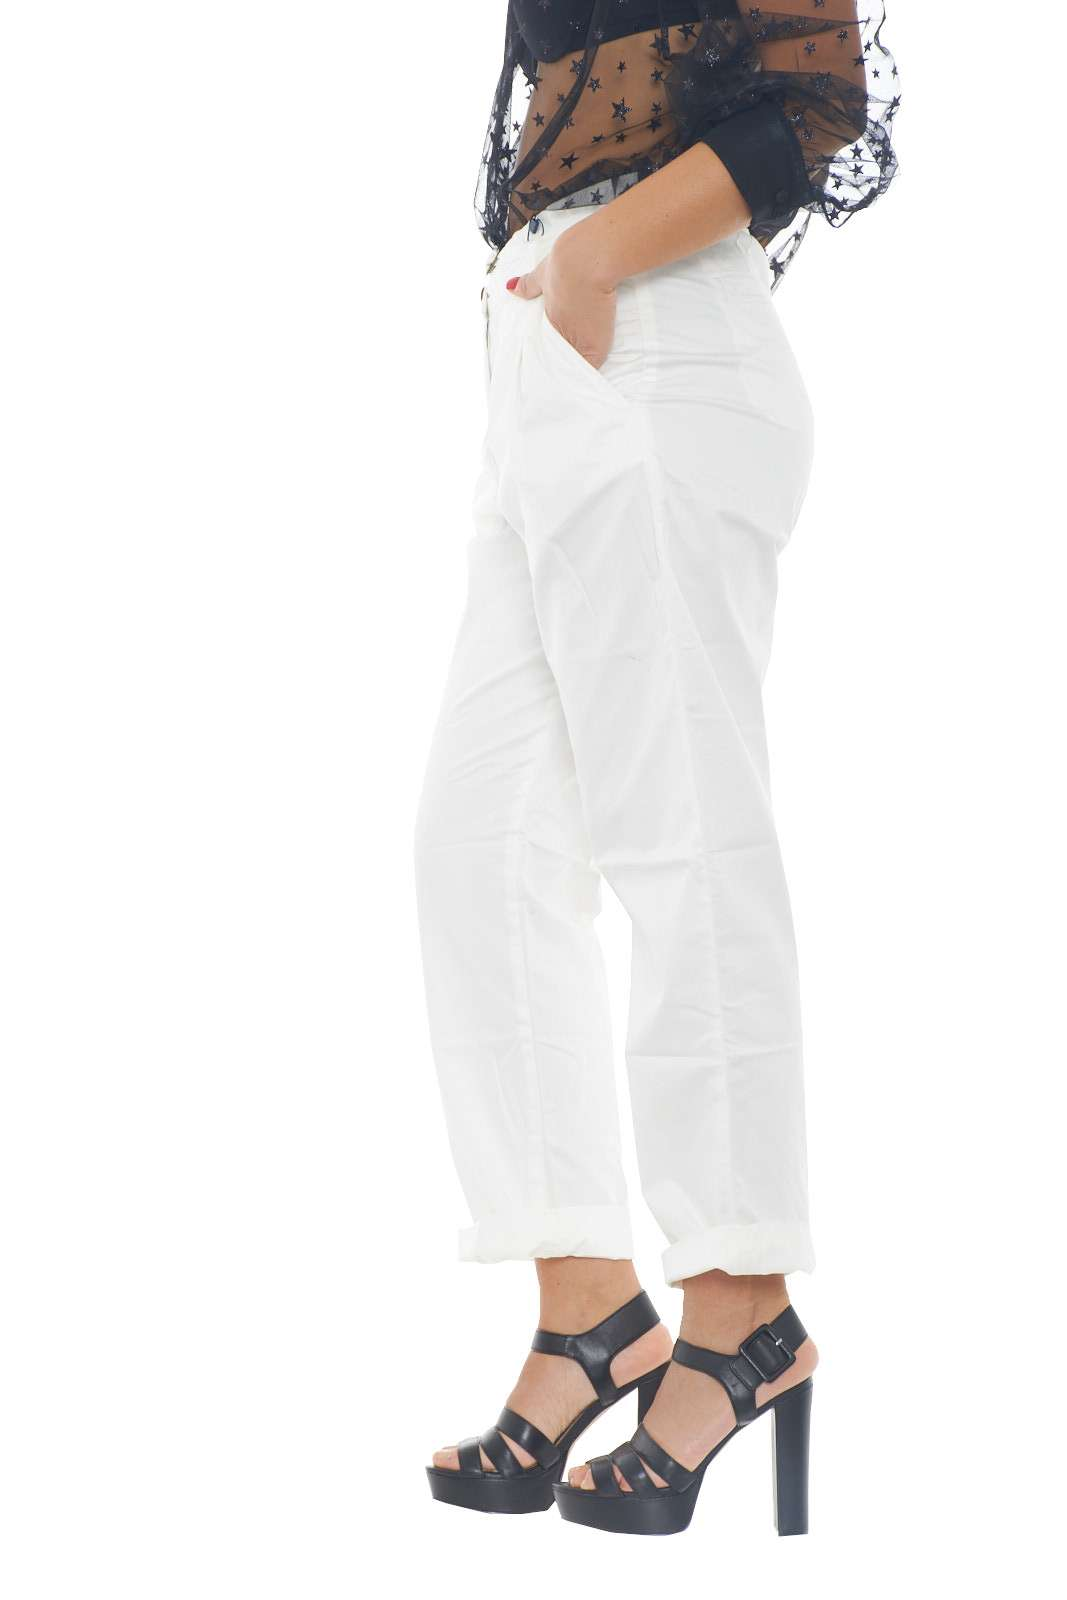 /media/catalog/product/a/i/PE-outlet_parmax-pantaloni-donna-Woolrich-wwpan1241-B.jpg